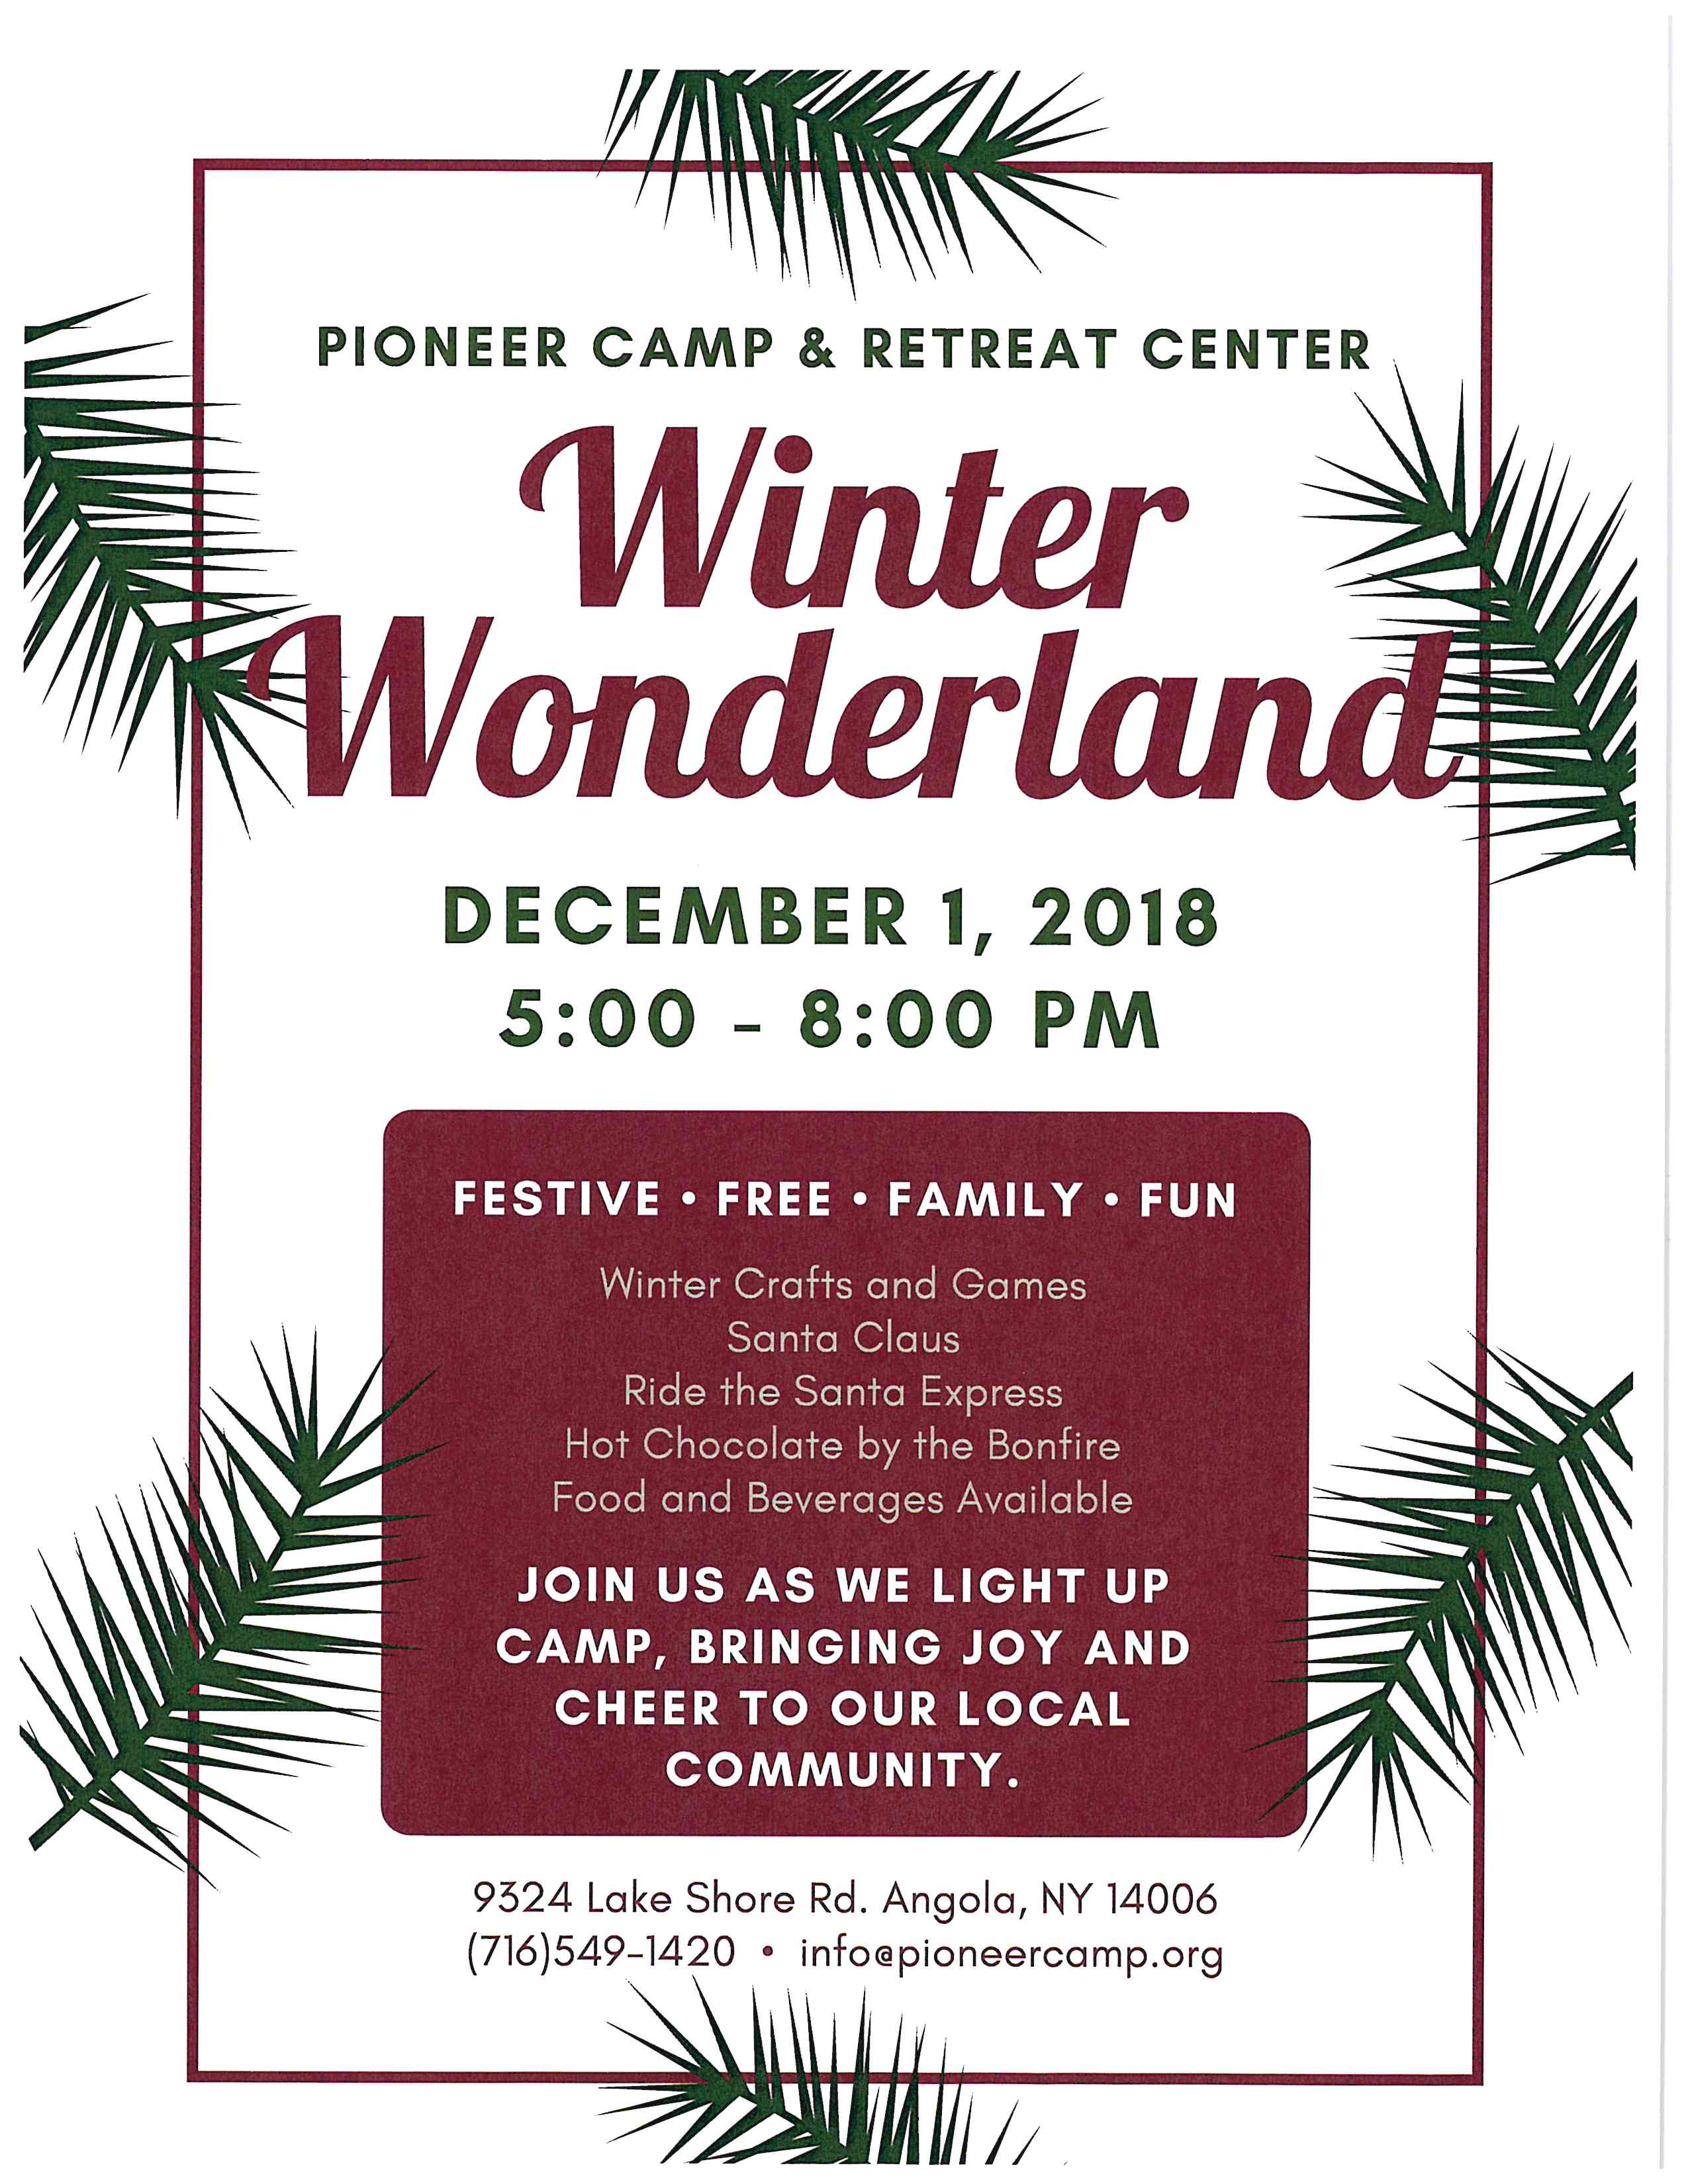 Winter Wonderland 2018 12 01